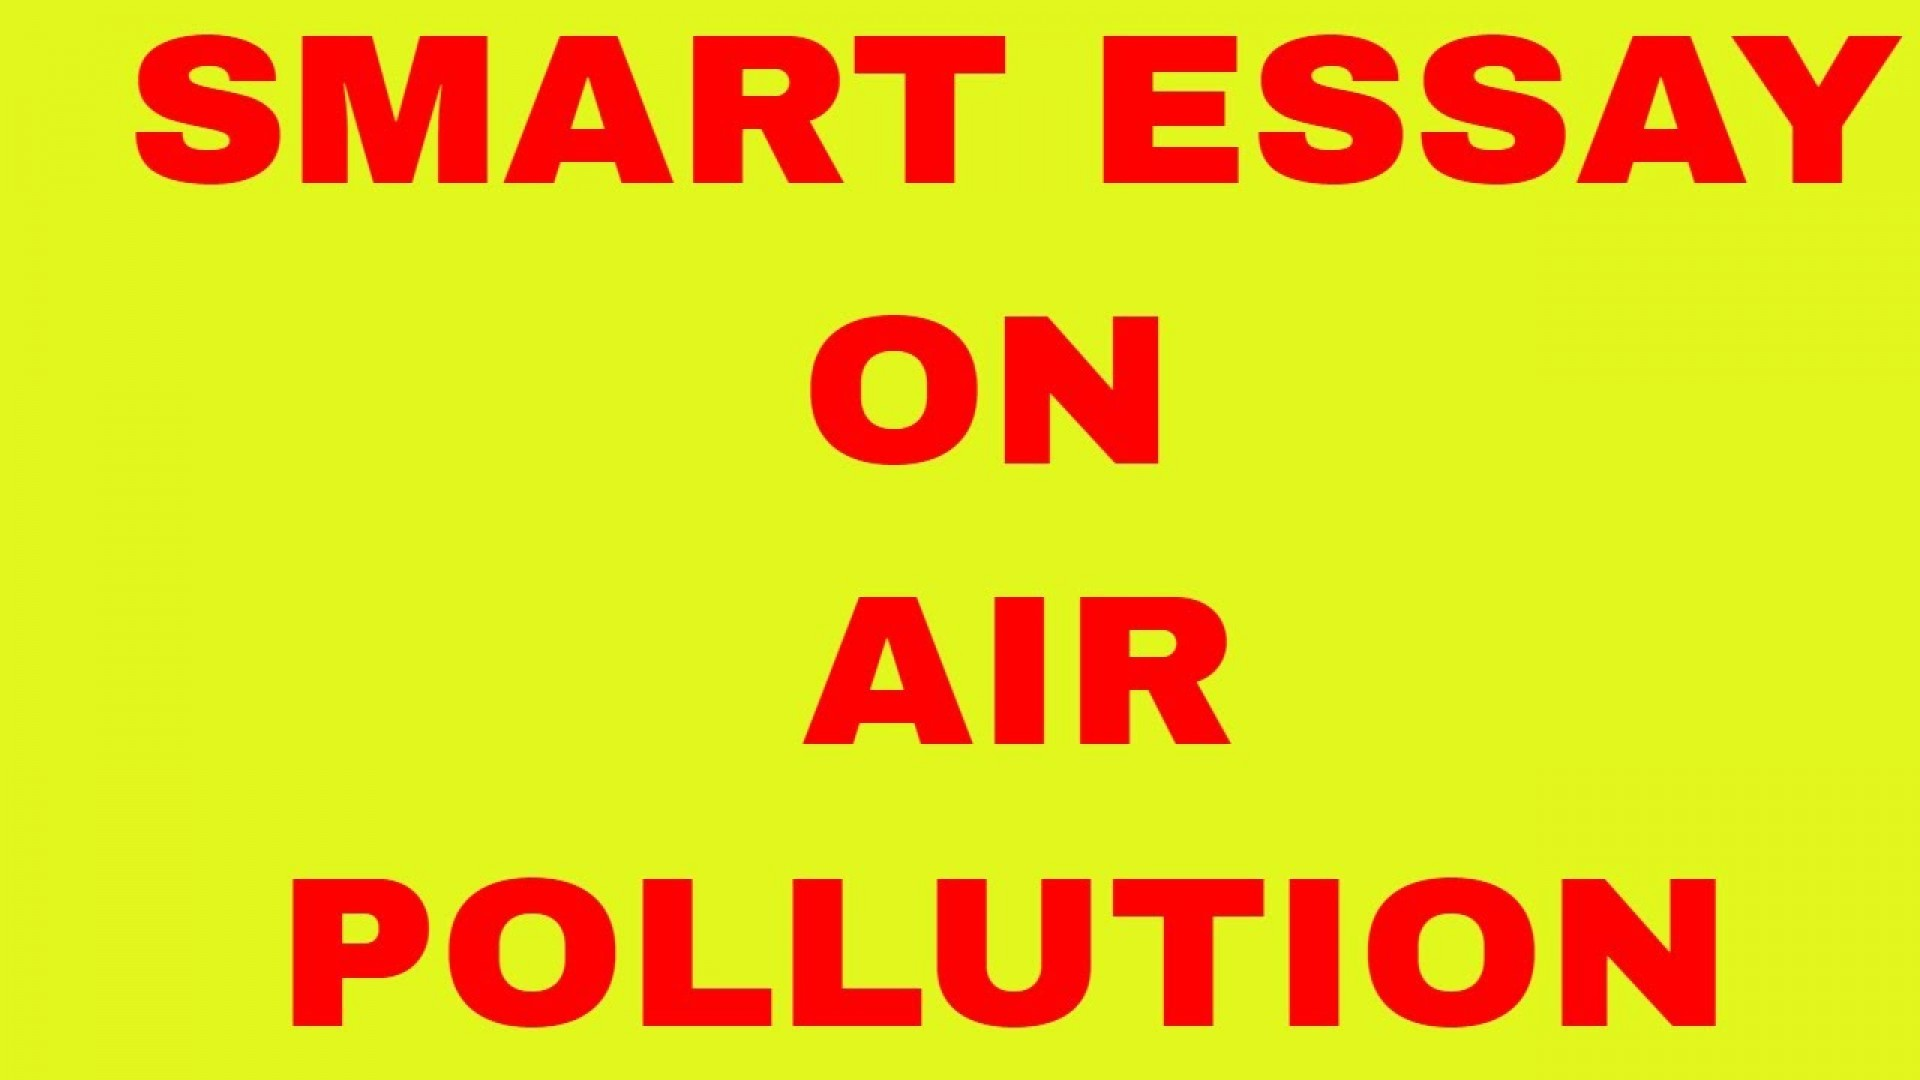 006 Essay Example On Air Pollution For Kids Sensational 1920